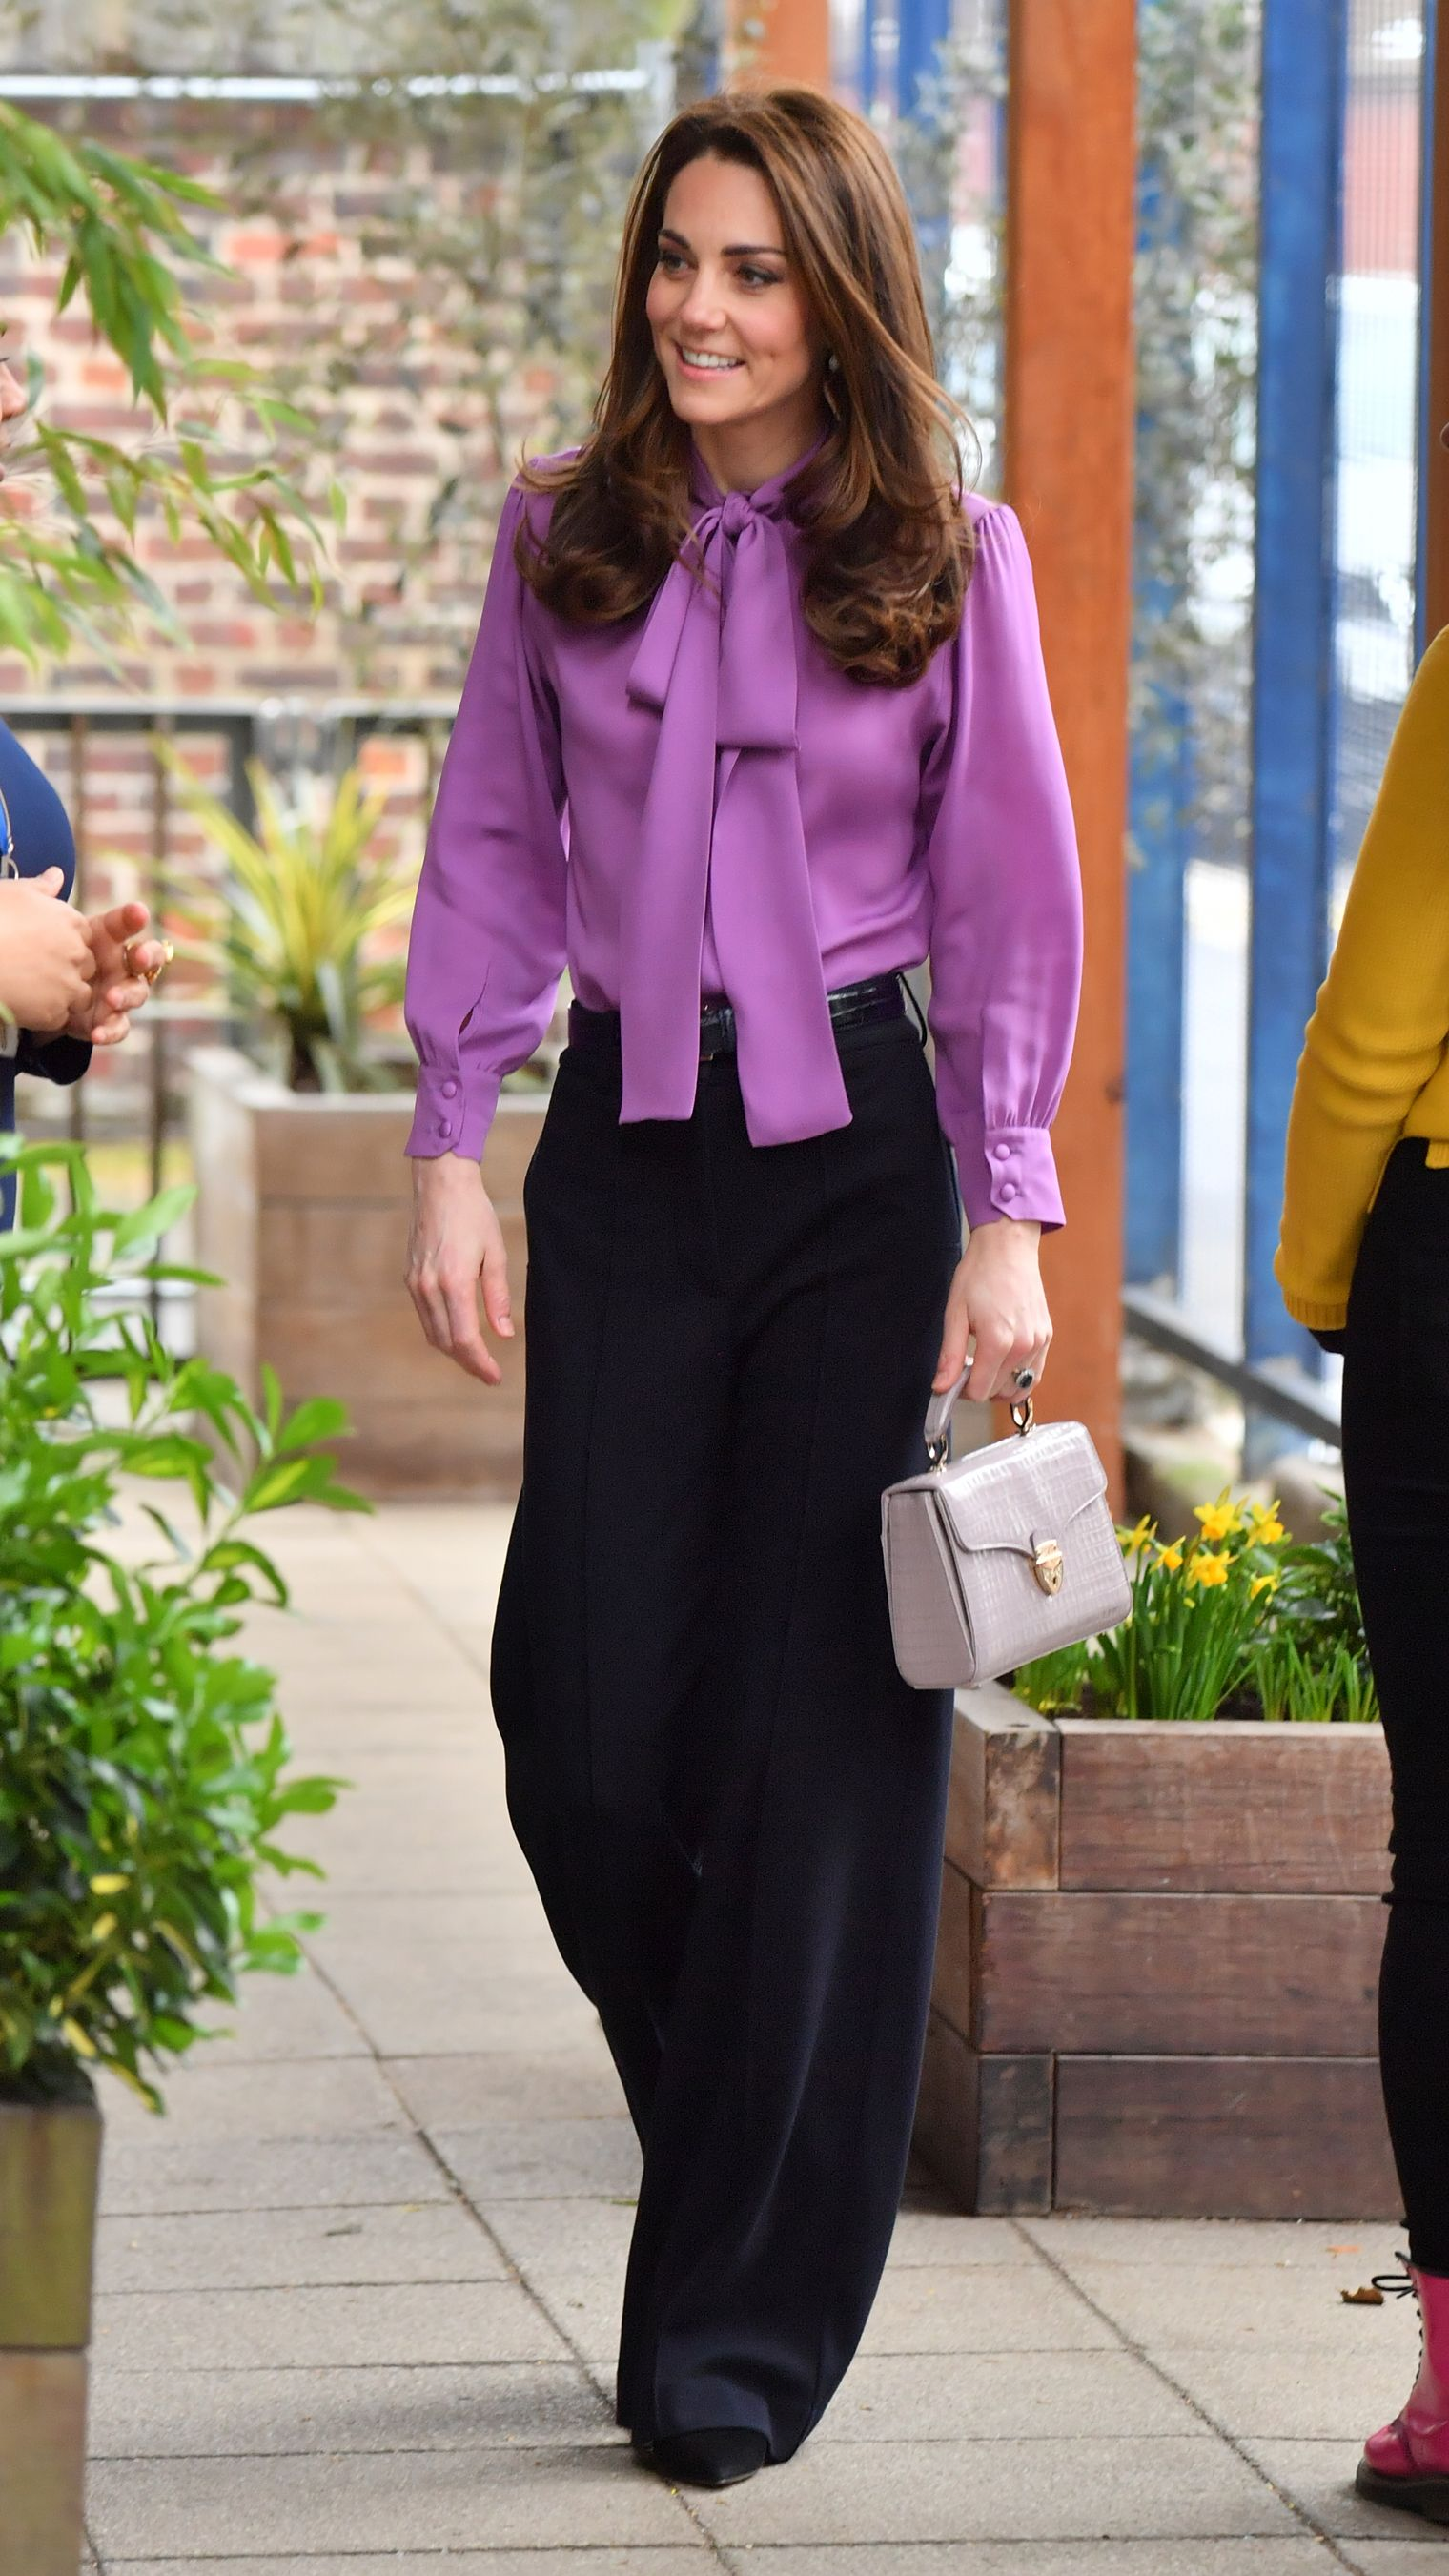 c1d27fe855c Kate Middleton s Best Fashion Looks - Duchess of Cambridge s Chic Outfits